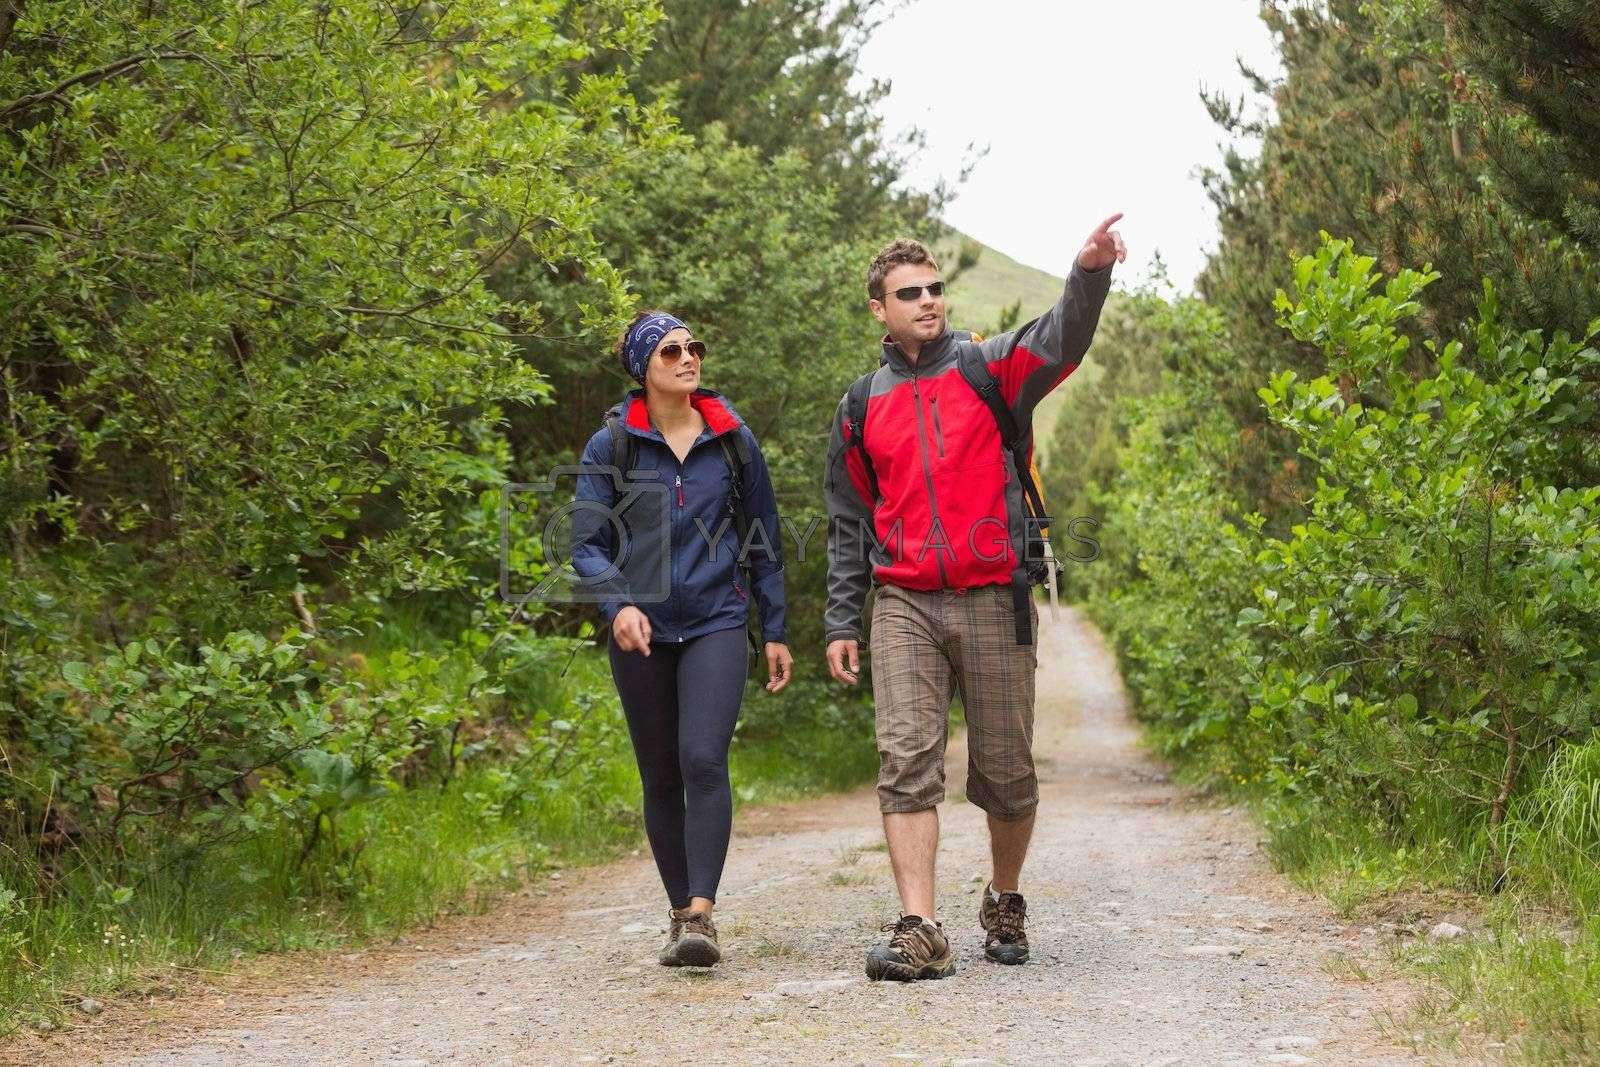 Couple going on a hike together with man pointing by Wavebreakmedia